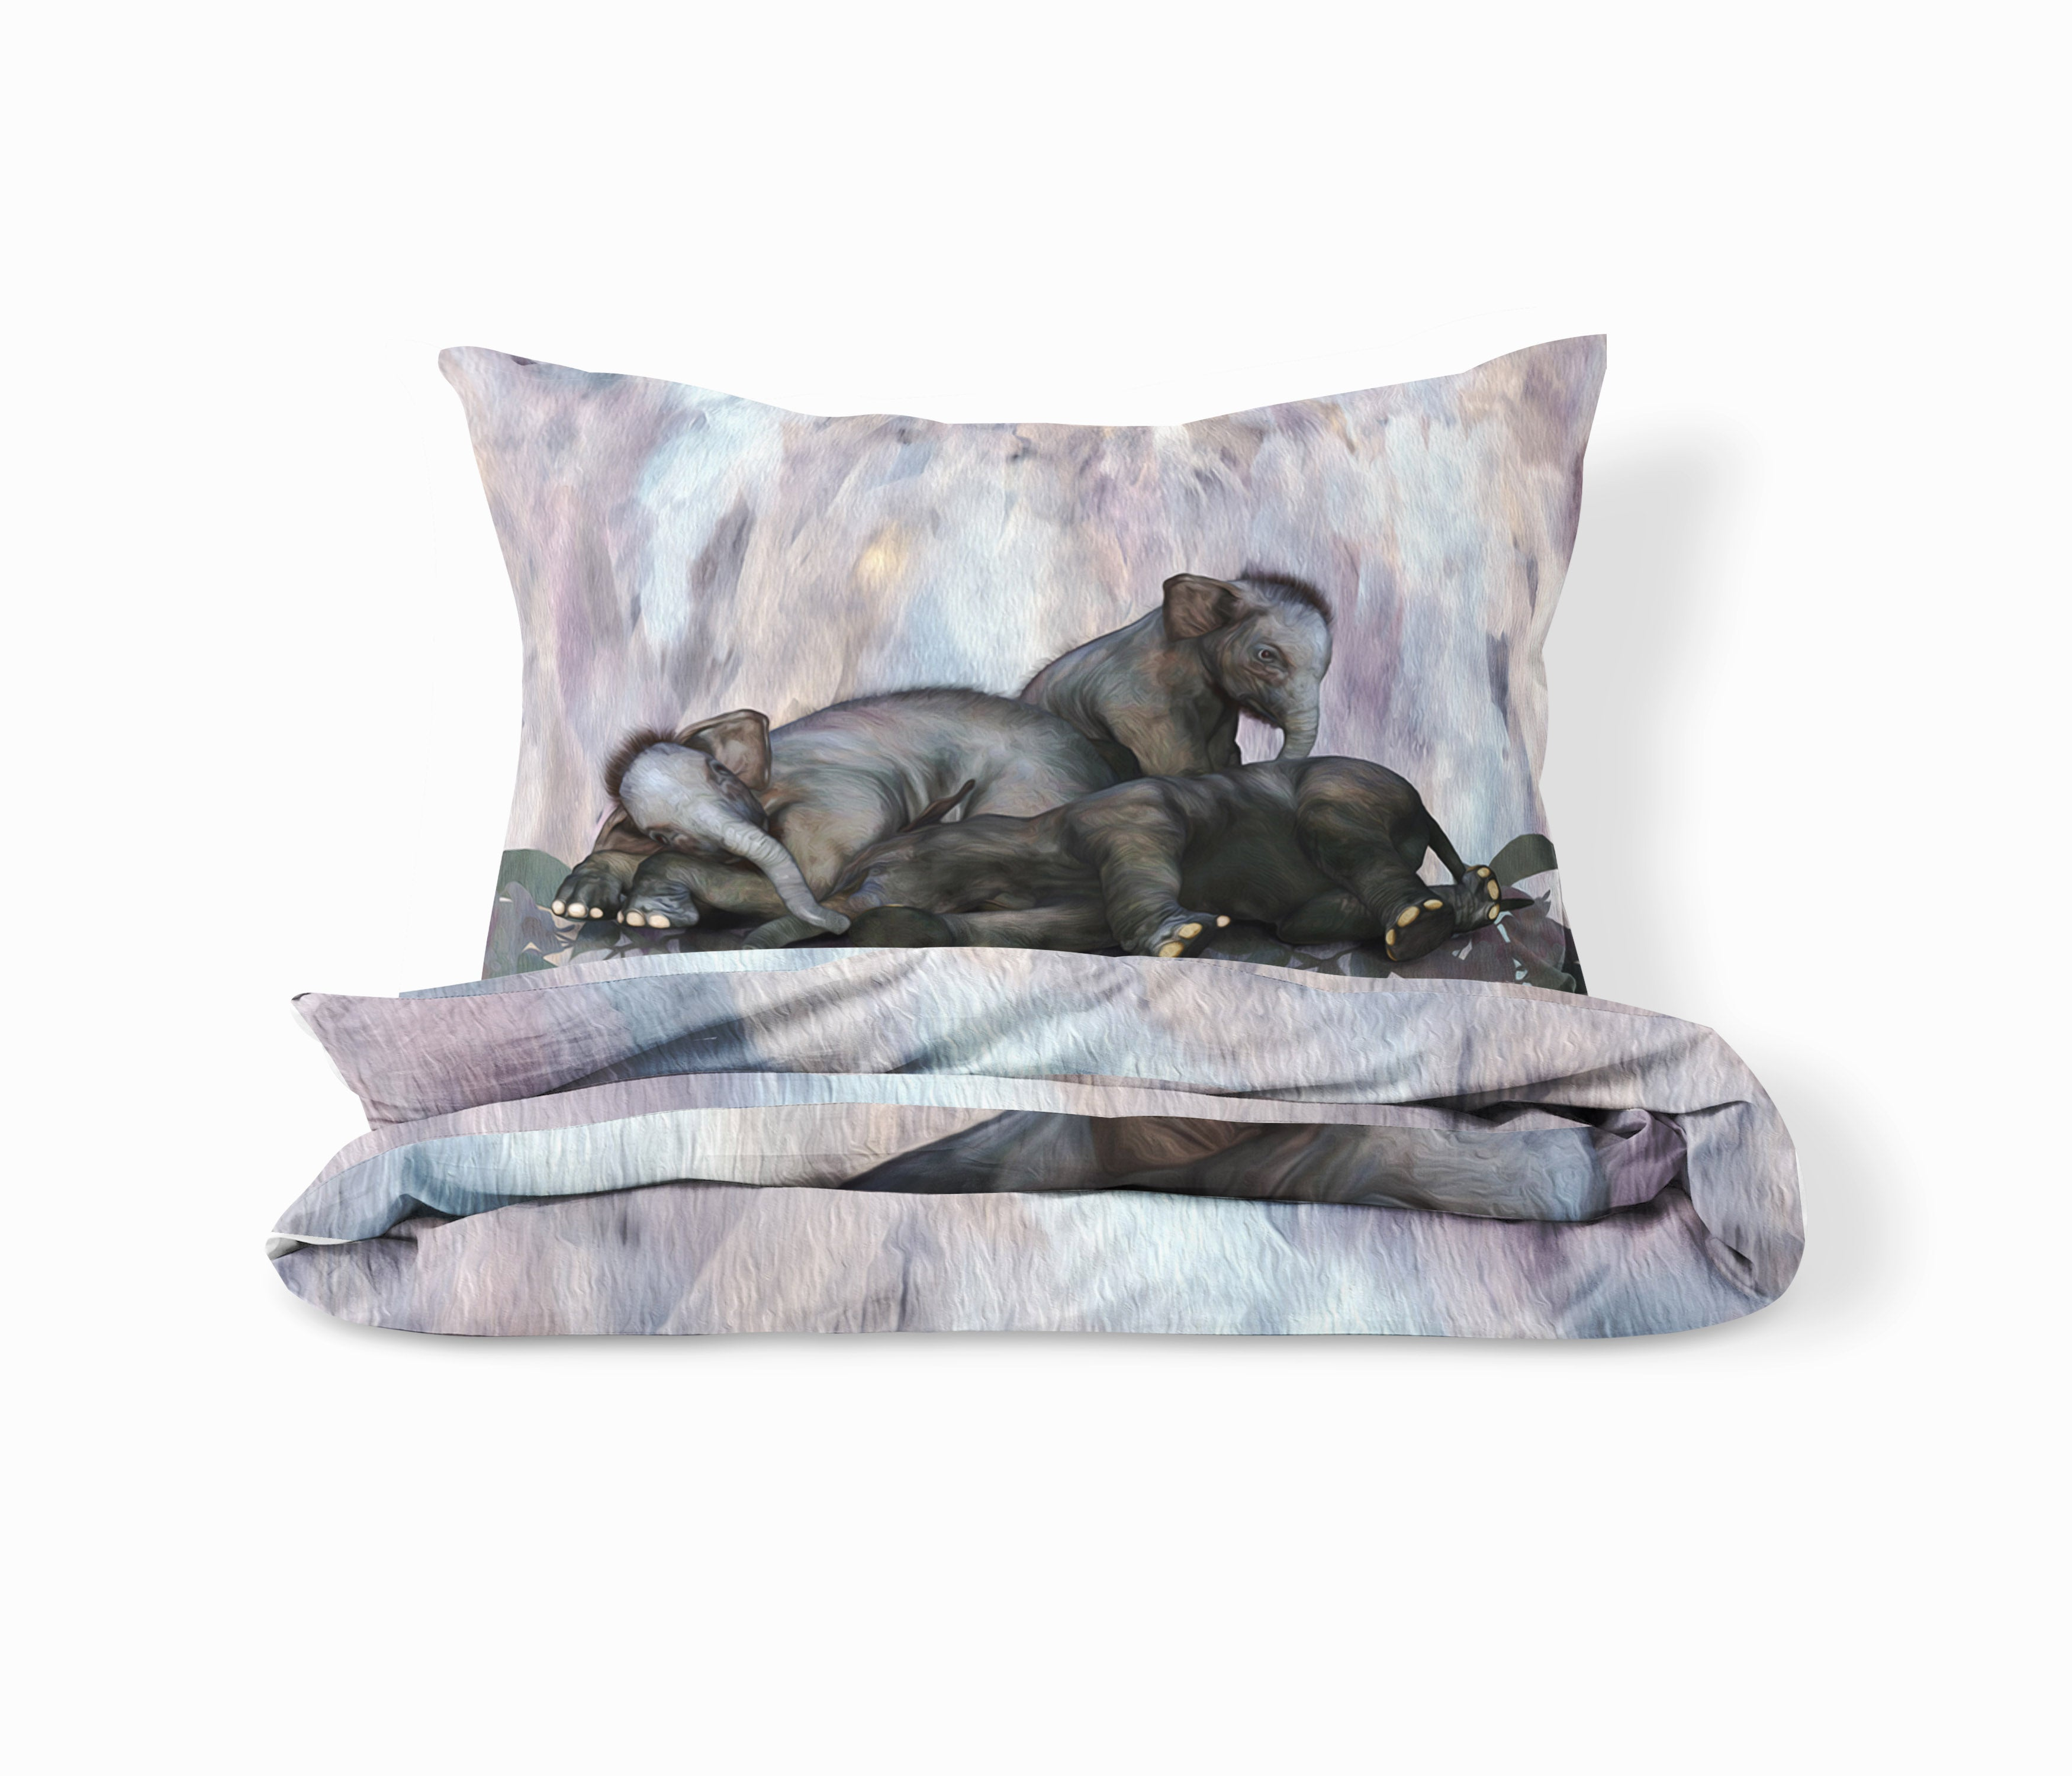 Sleepy Elephant Bedding Set